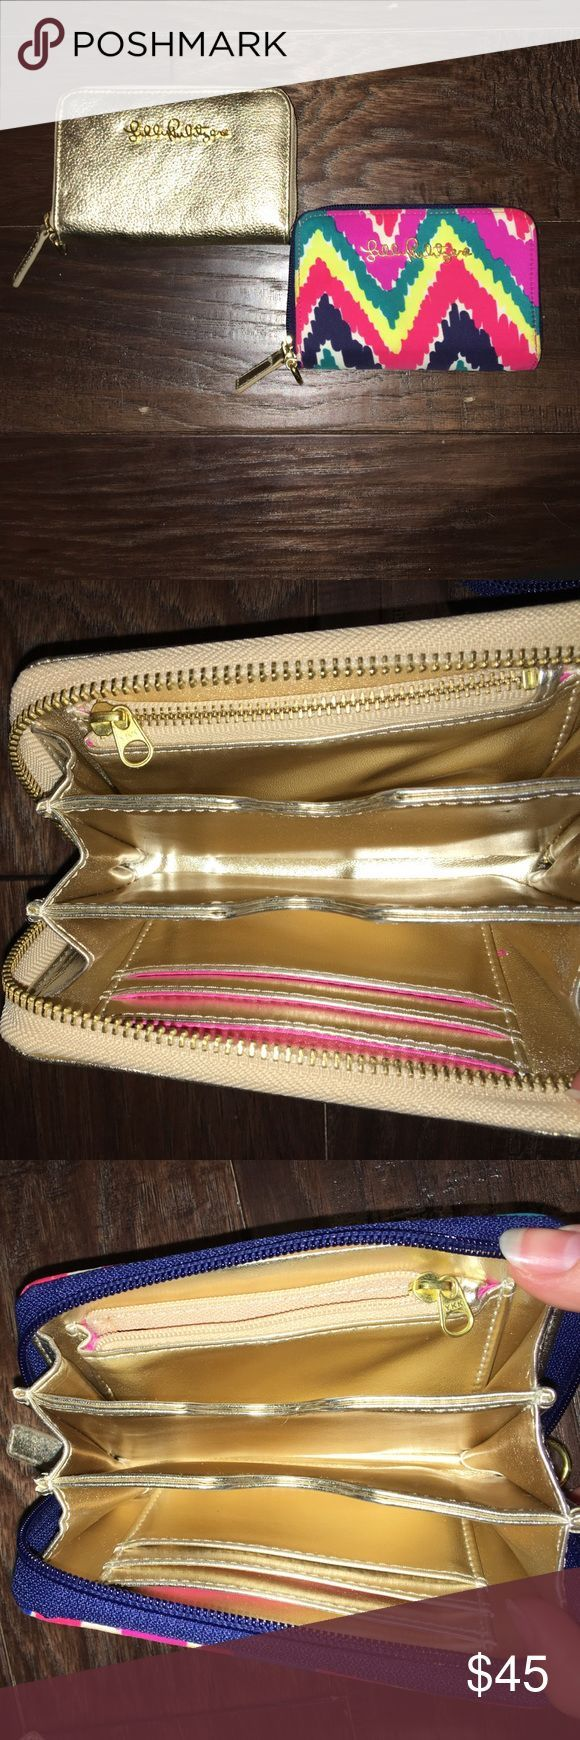 TWO FOR ONE! 2 Lilly Pulitzer Wristlets 💖 Get two for the price of one! Lilly Pulitzer wristlets gently used. Will fit an iPhone 5/s. Gold is leather and the chevron is silk material. Gold and pink lining in both. Offers welcome. (Both the same style wallet). Lilly Pulitzer Accessories Key & Card Holders